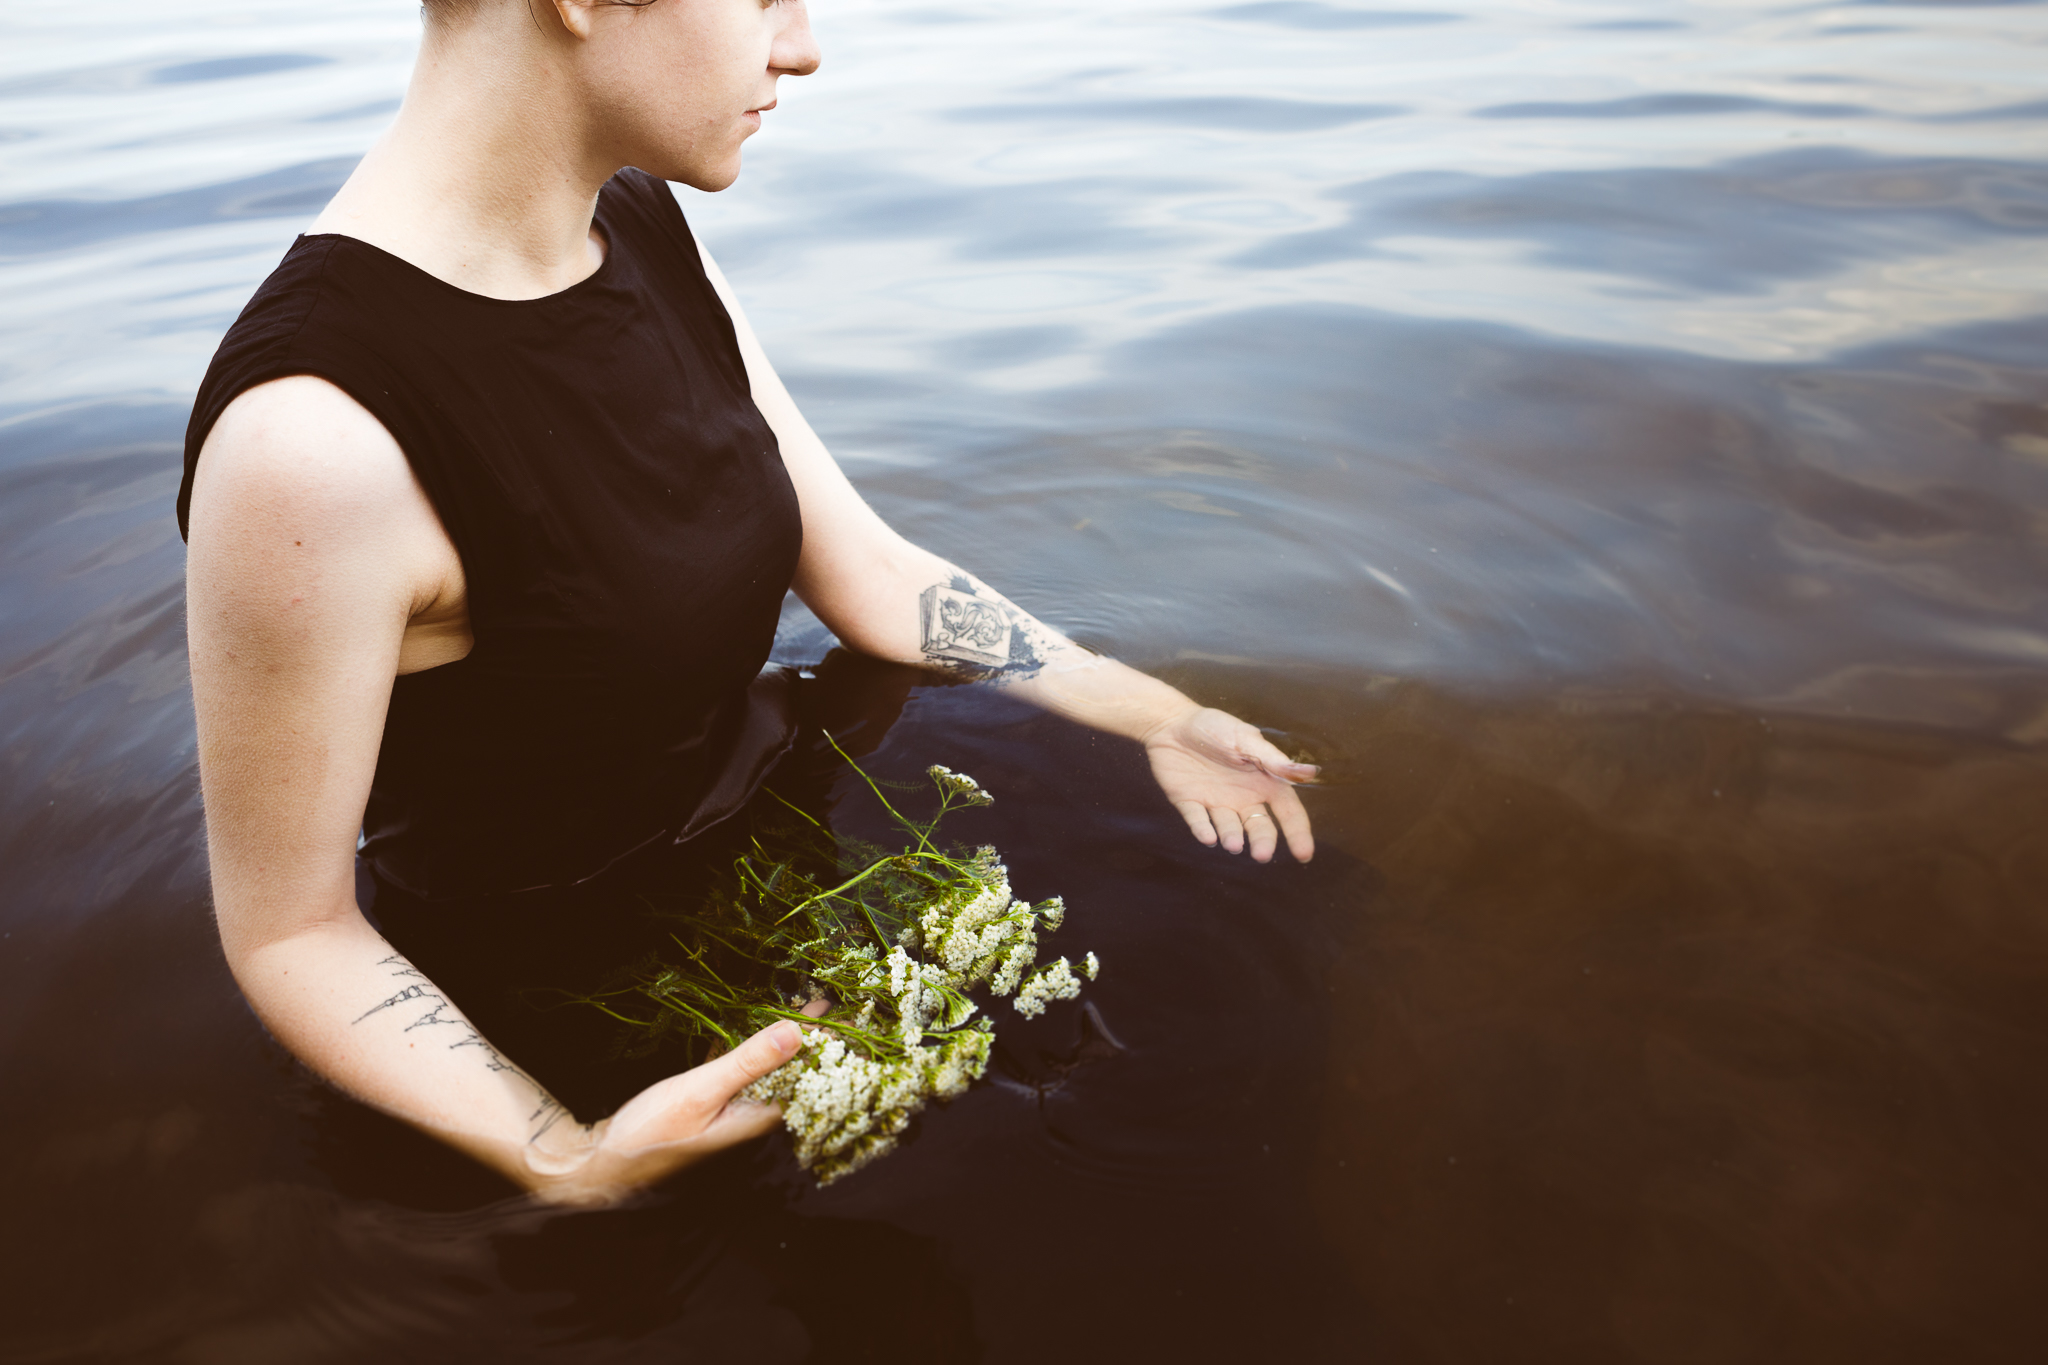 Ophelia | photographer: lindamigla.lv